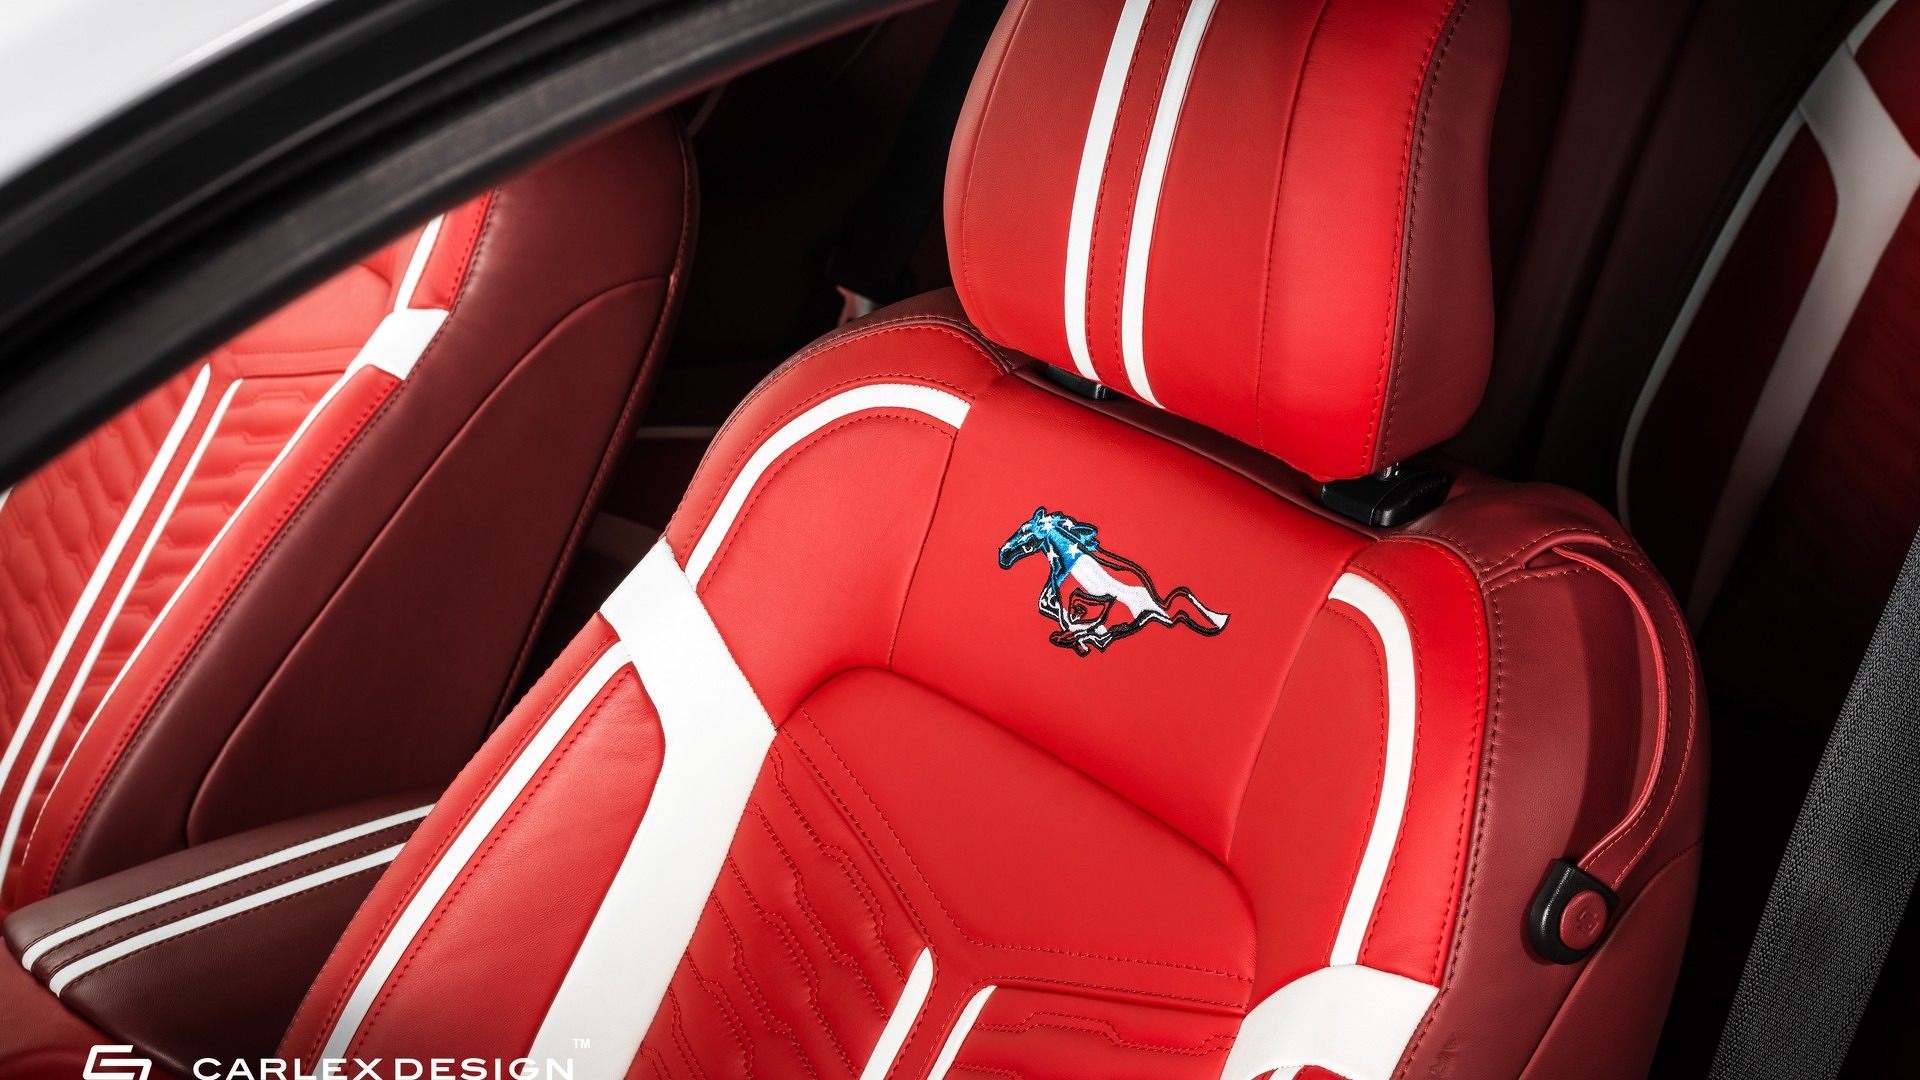 Tremendous Supercharged 727 Hp Ford Mustang Gt Is Anything But Subtle Squirreltailoven Fun Painted Chair Ideas Images Squirreltailovenorg